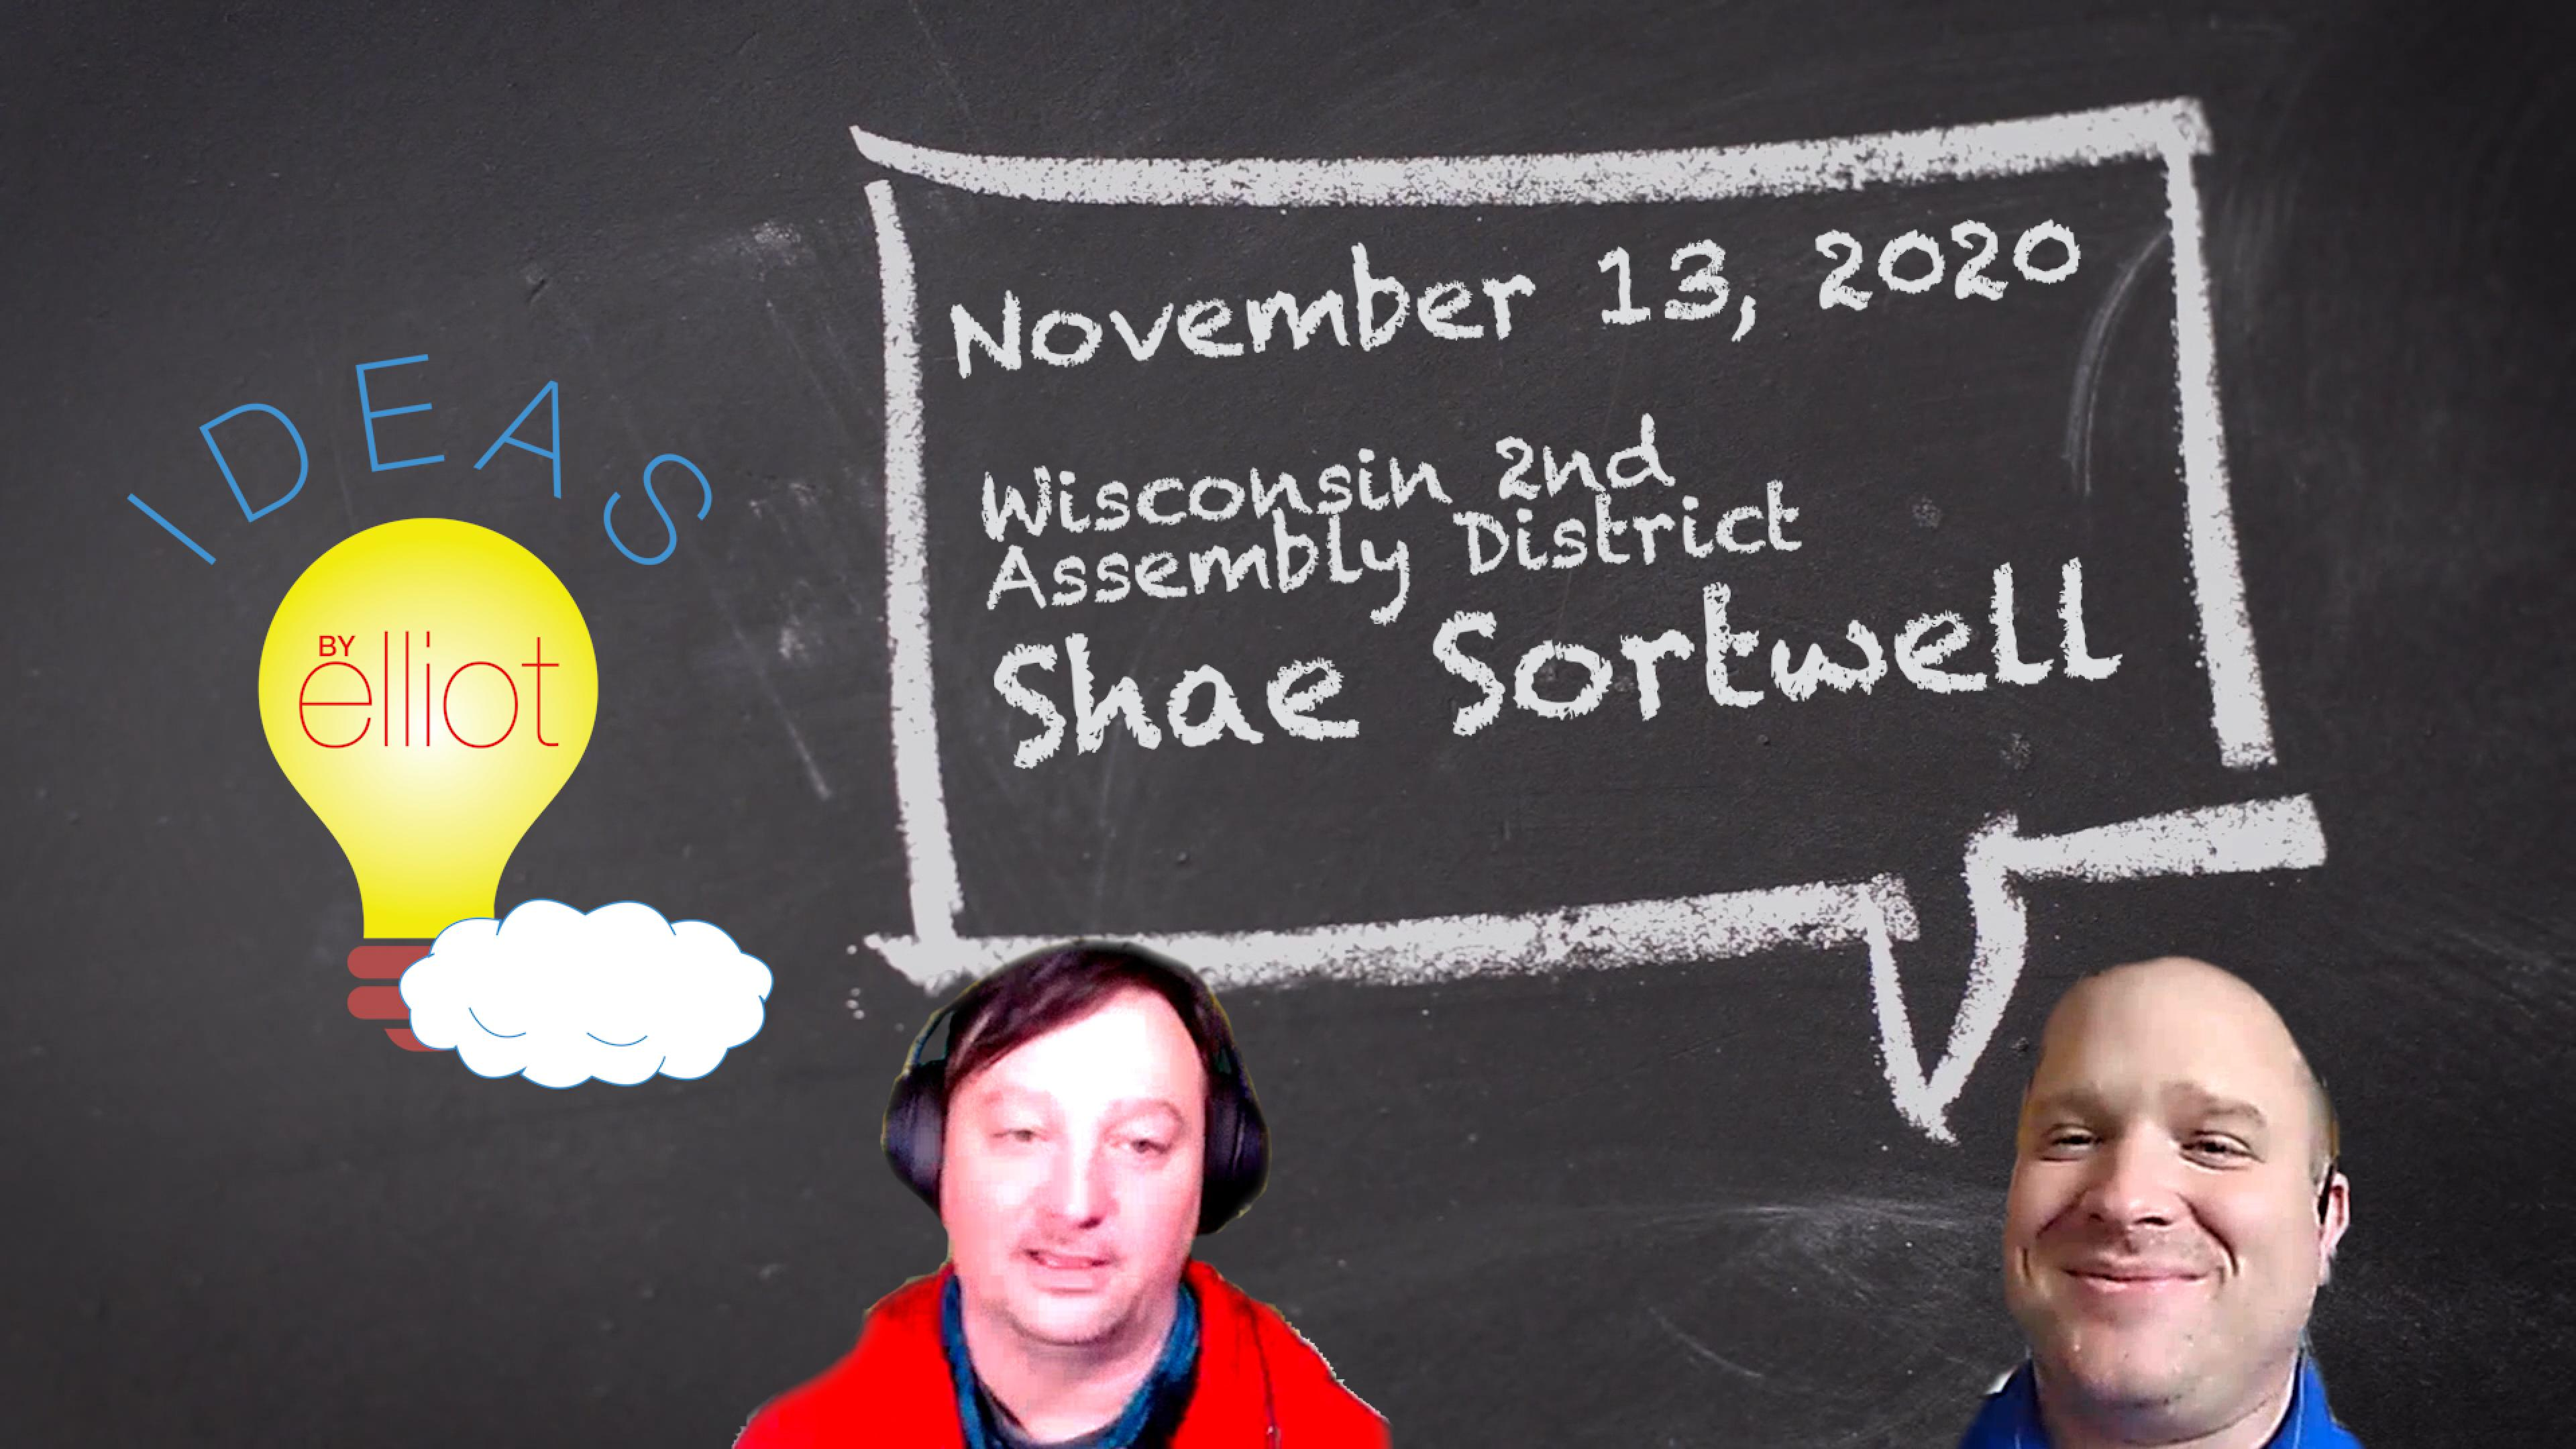 November 13, 2020 - Wisconsin Rep Shae Sortwell